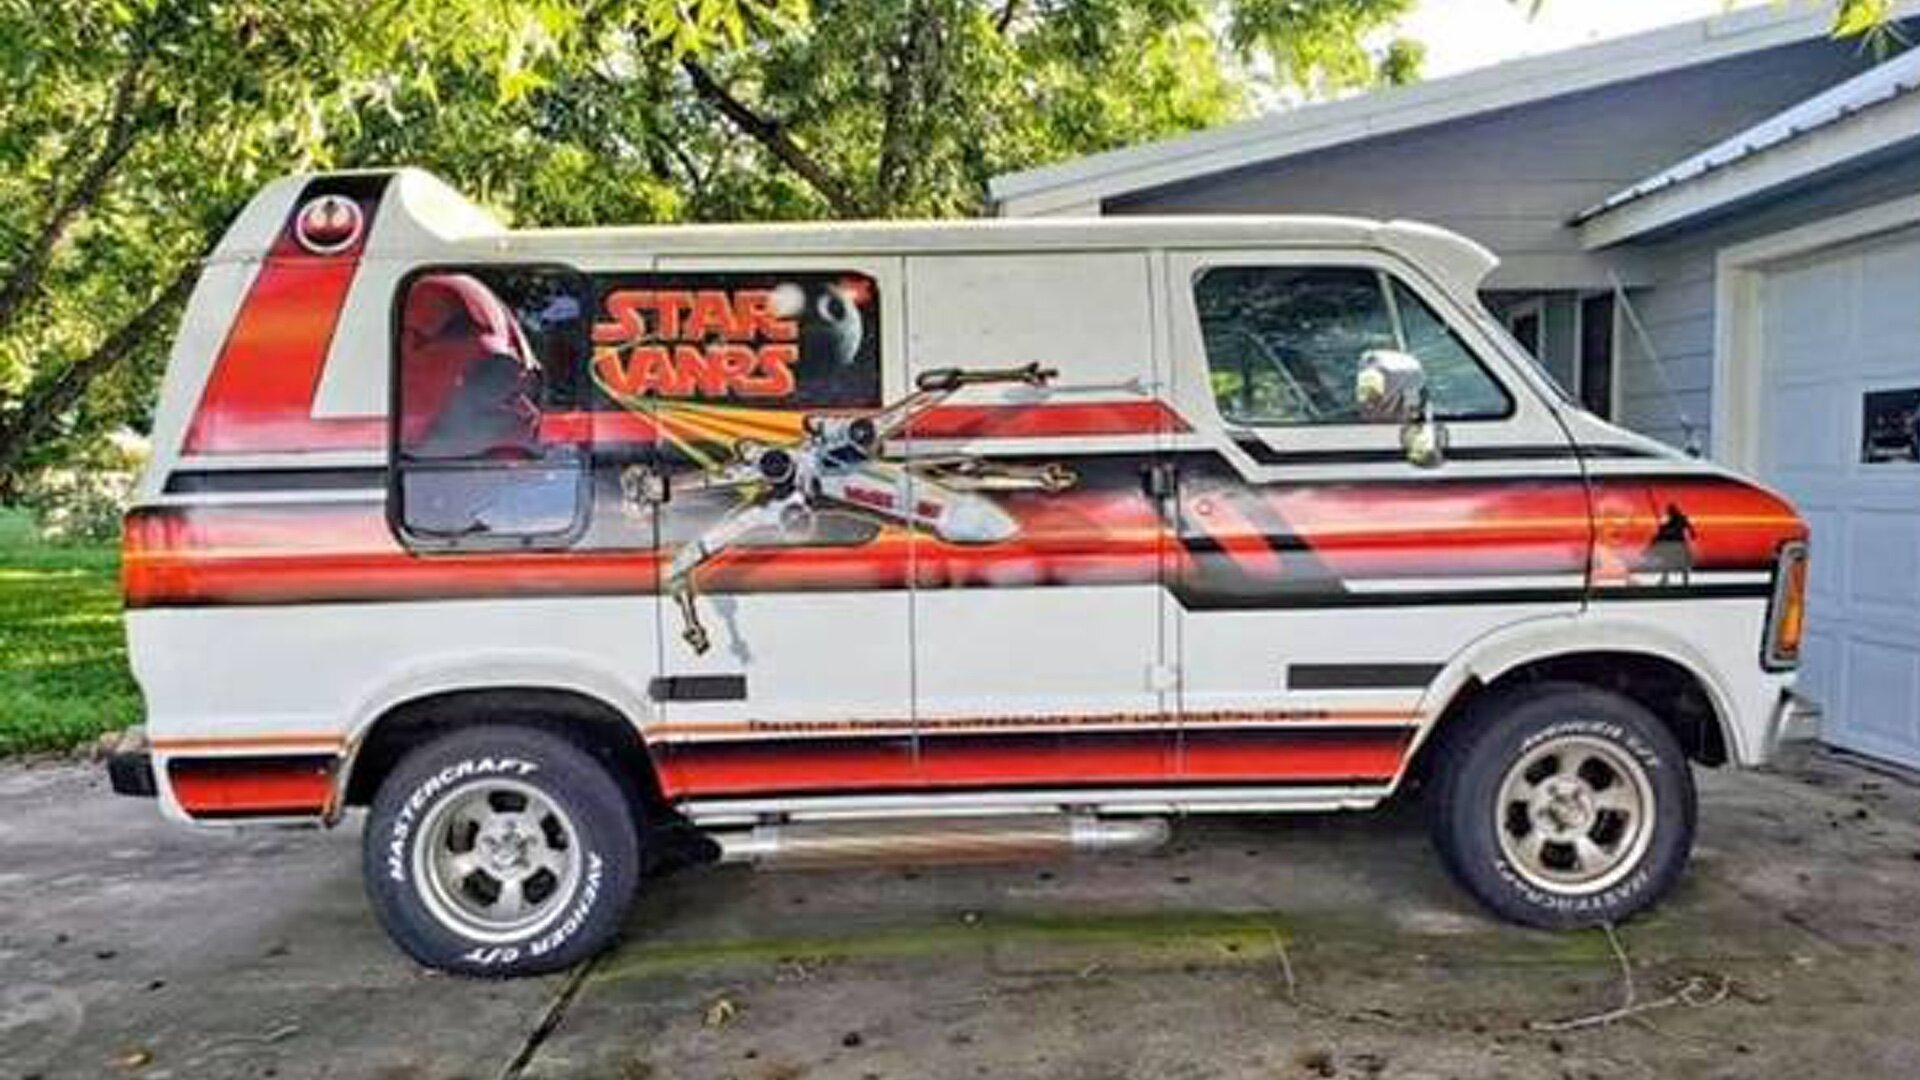 Check Out This Awesome Vintage 1979 Dodge Star Wars Van For Sale Geektyrant